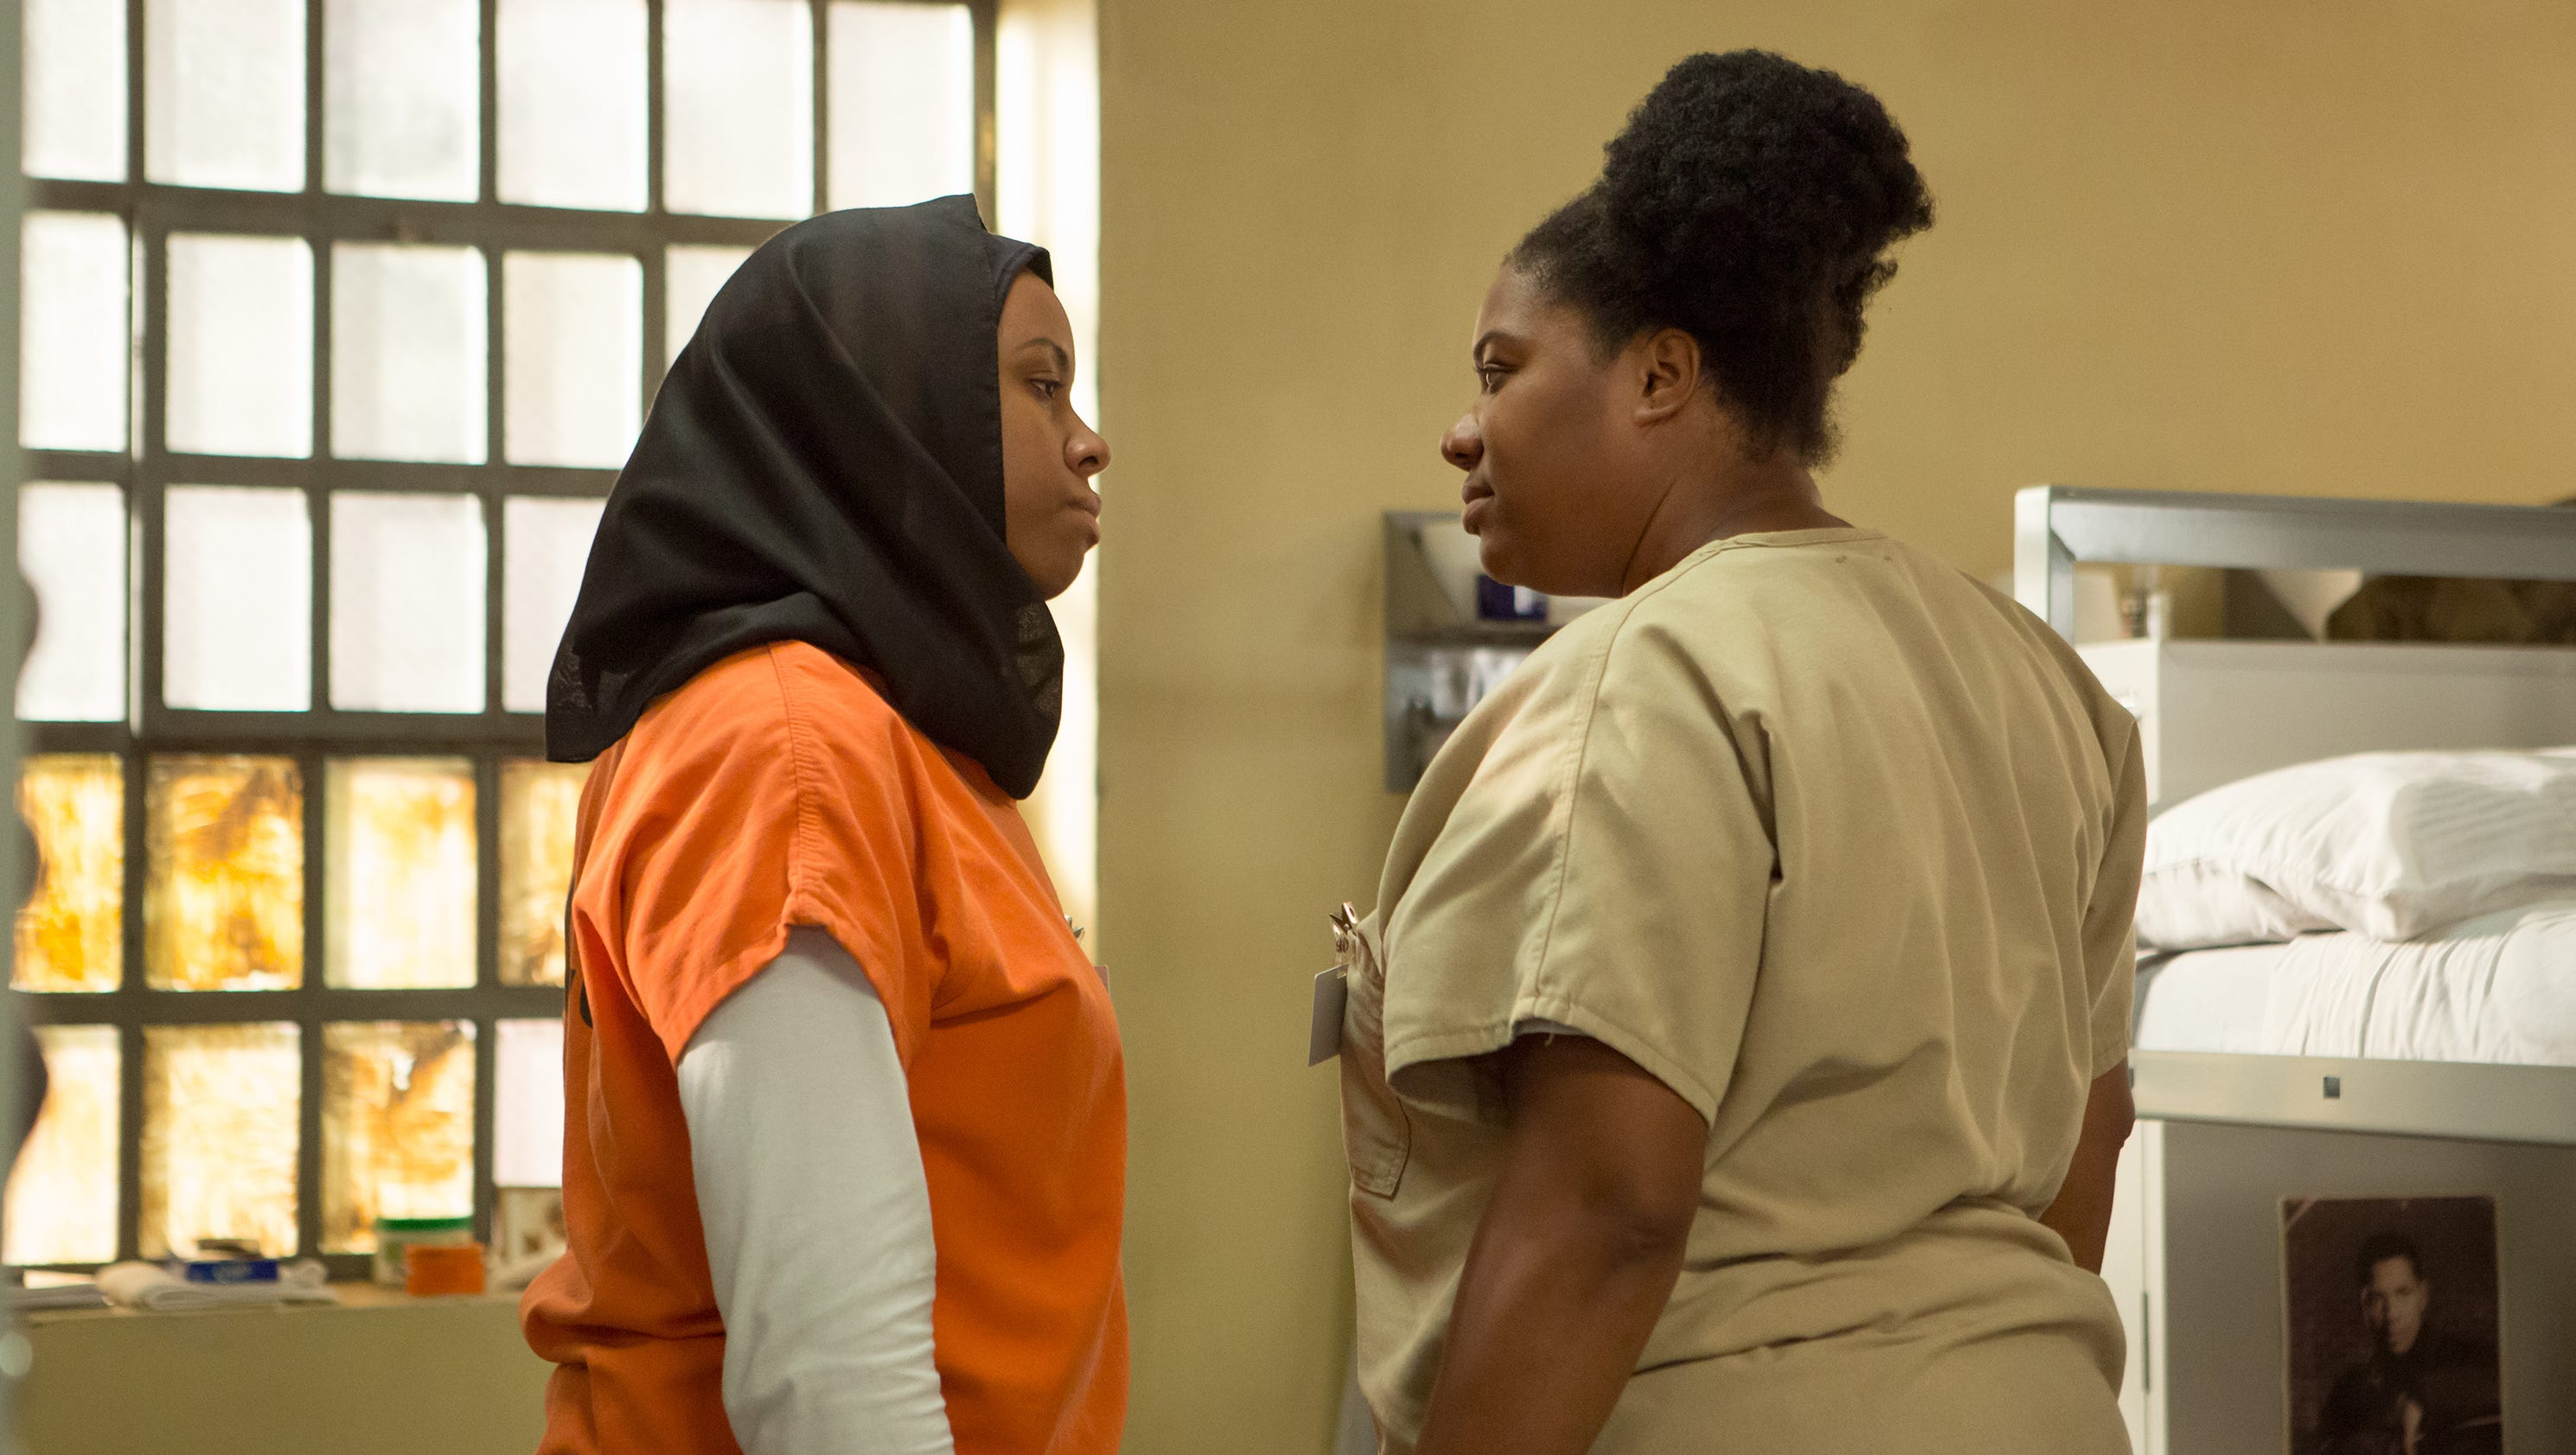 university of central florida ucf lifestyles entertainment news ucf alumna lands role in orange is the new black